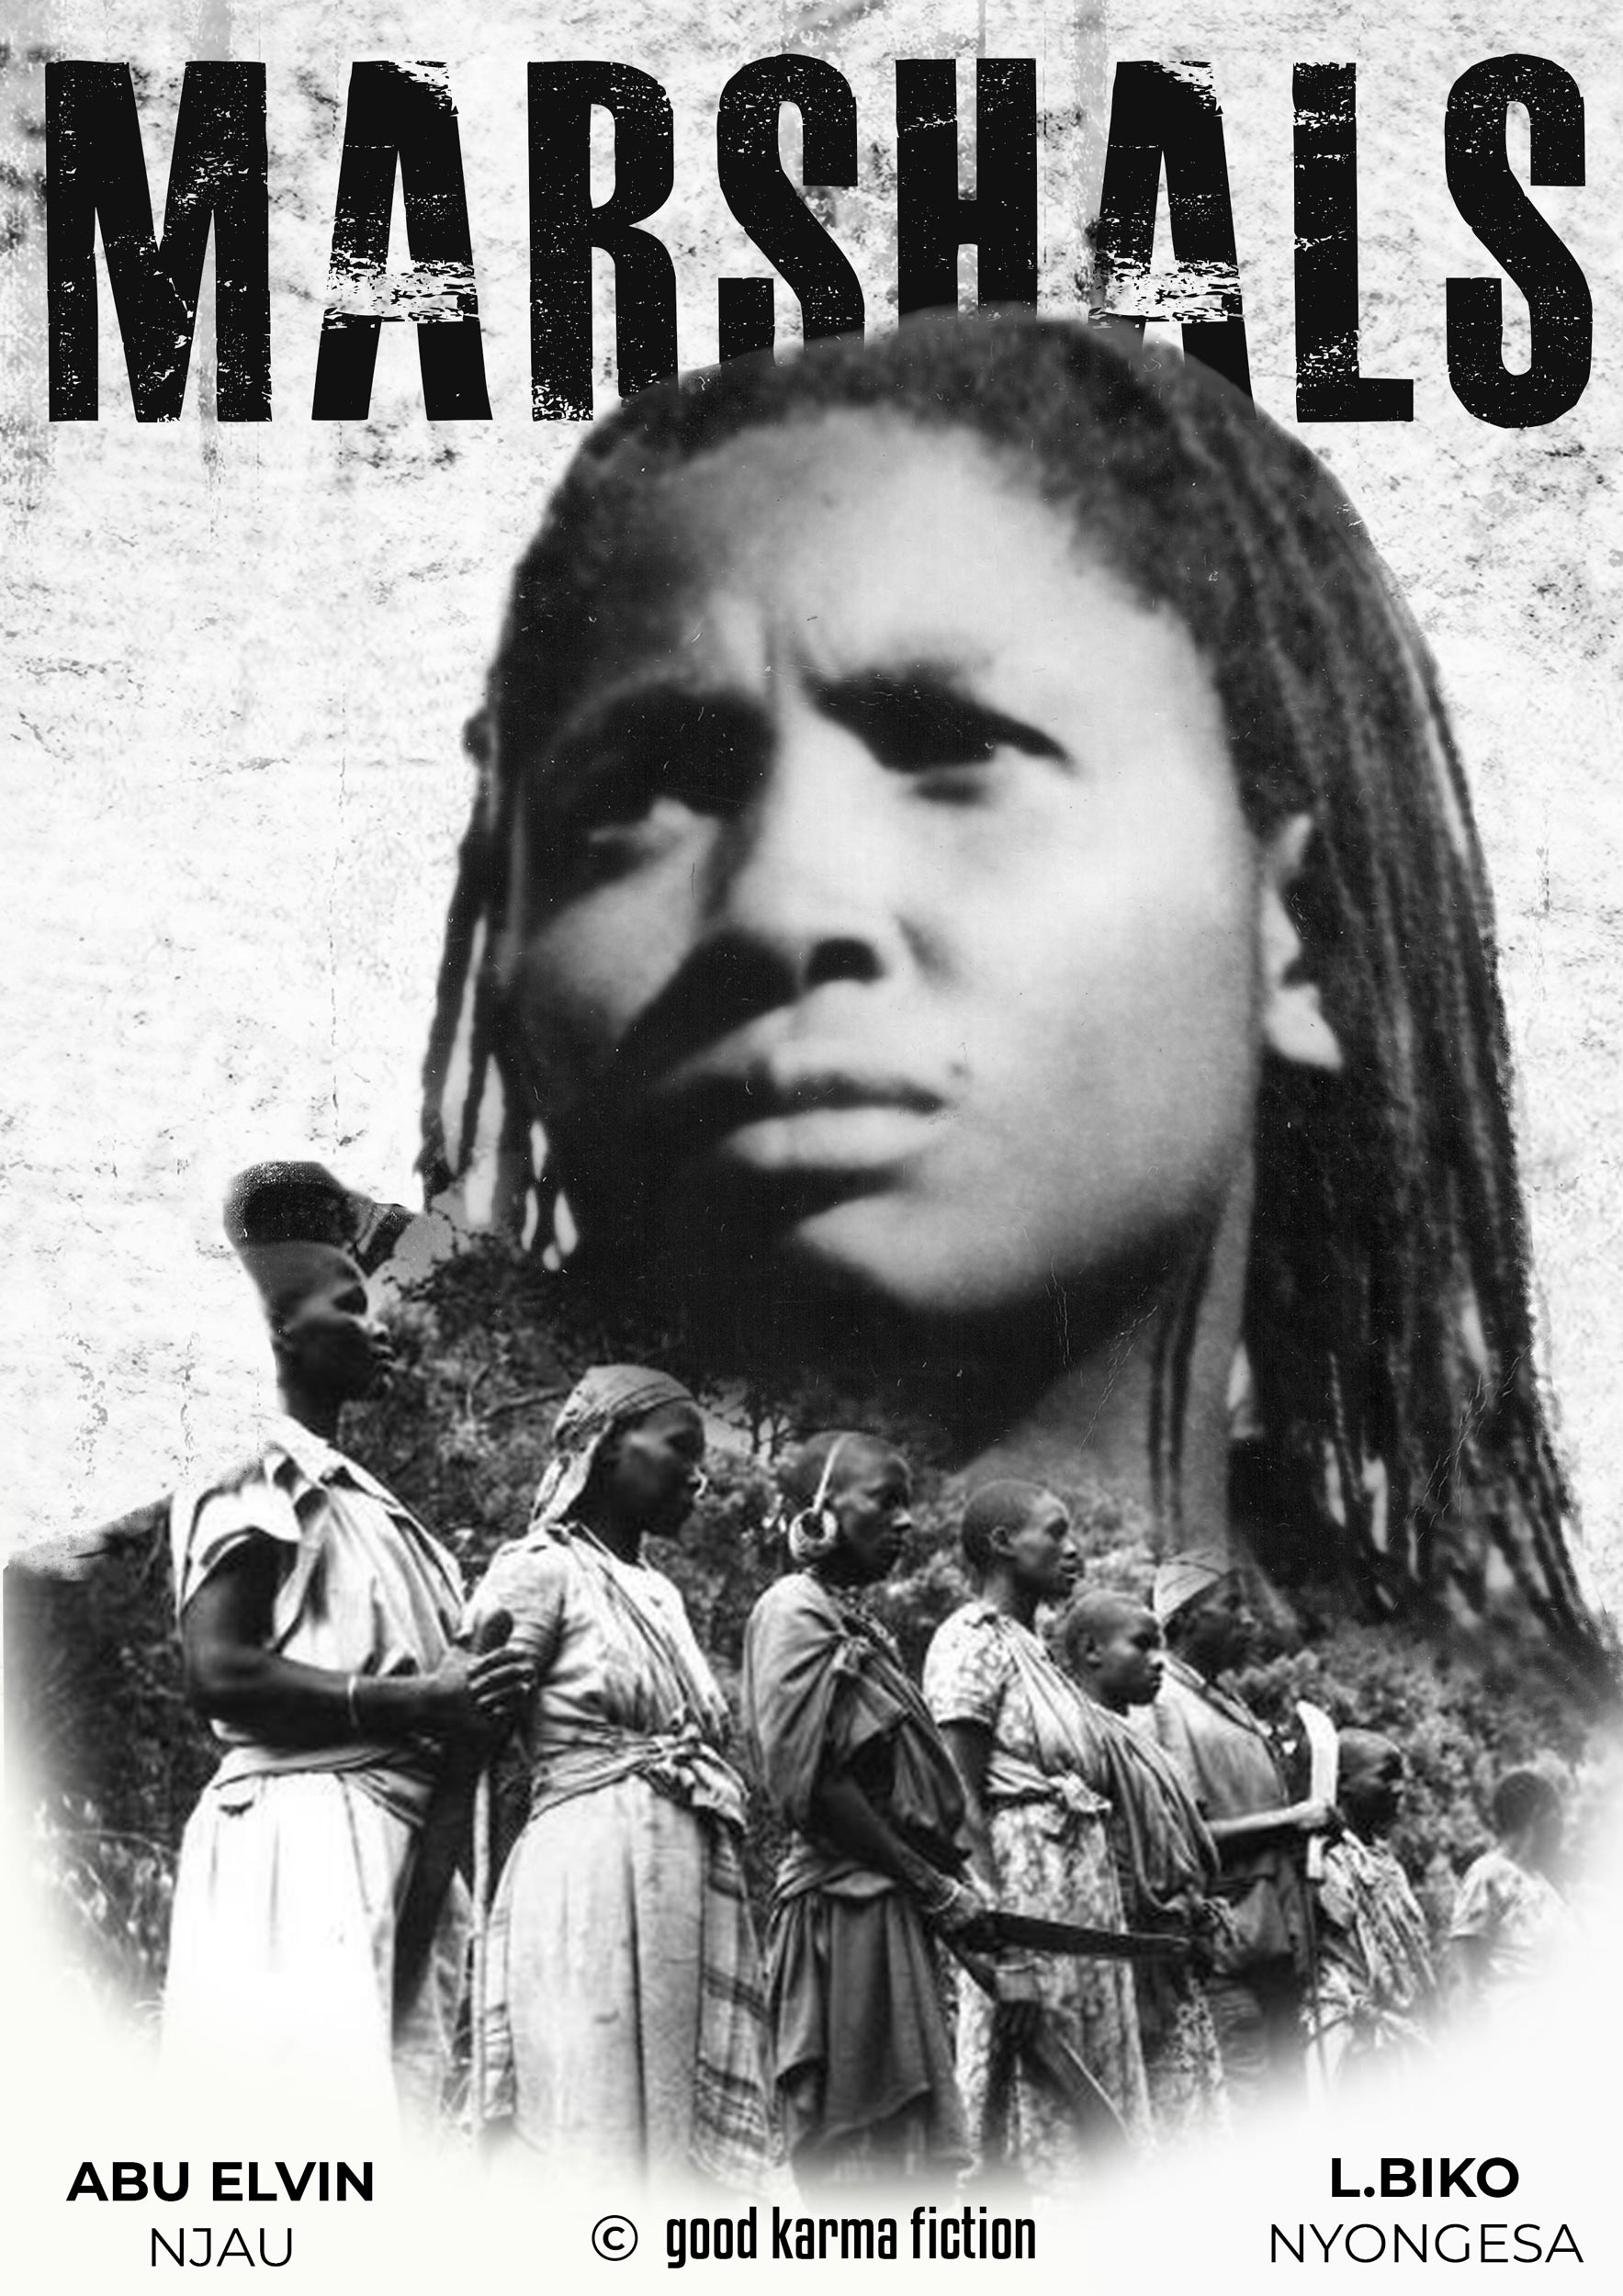 "<i  id=""iconinf1"" class=""fas fa-info"" aria-hidden=""true""></i><br> <h3>MARSHALS</h3><br><p> Kenya, 1956. A teenage girl is forced to flee into the unforgiving Abadare's forest after colonial authorities subdue her village, but until she meets a skilled and vengeful field marshal, her family will never know freedom … <br><br><b>-Feature Film, 90 Min., Cinema-<BR> In Financing</b></p>"